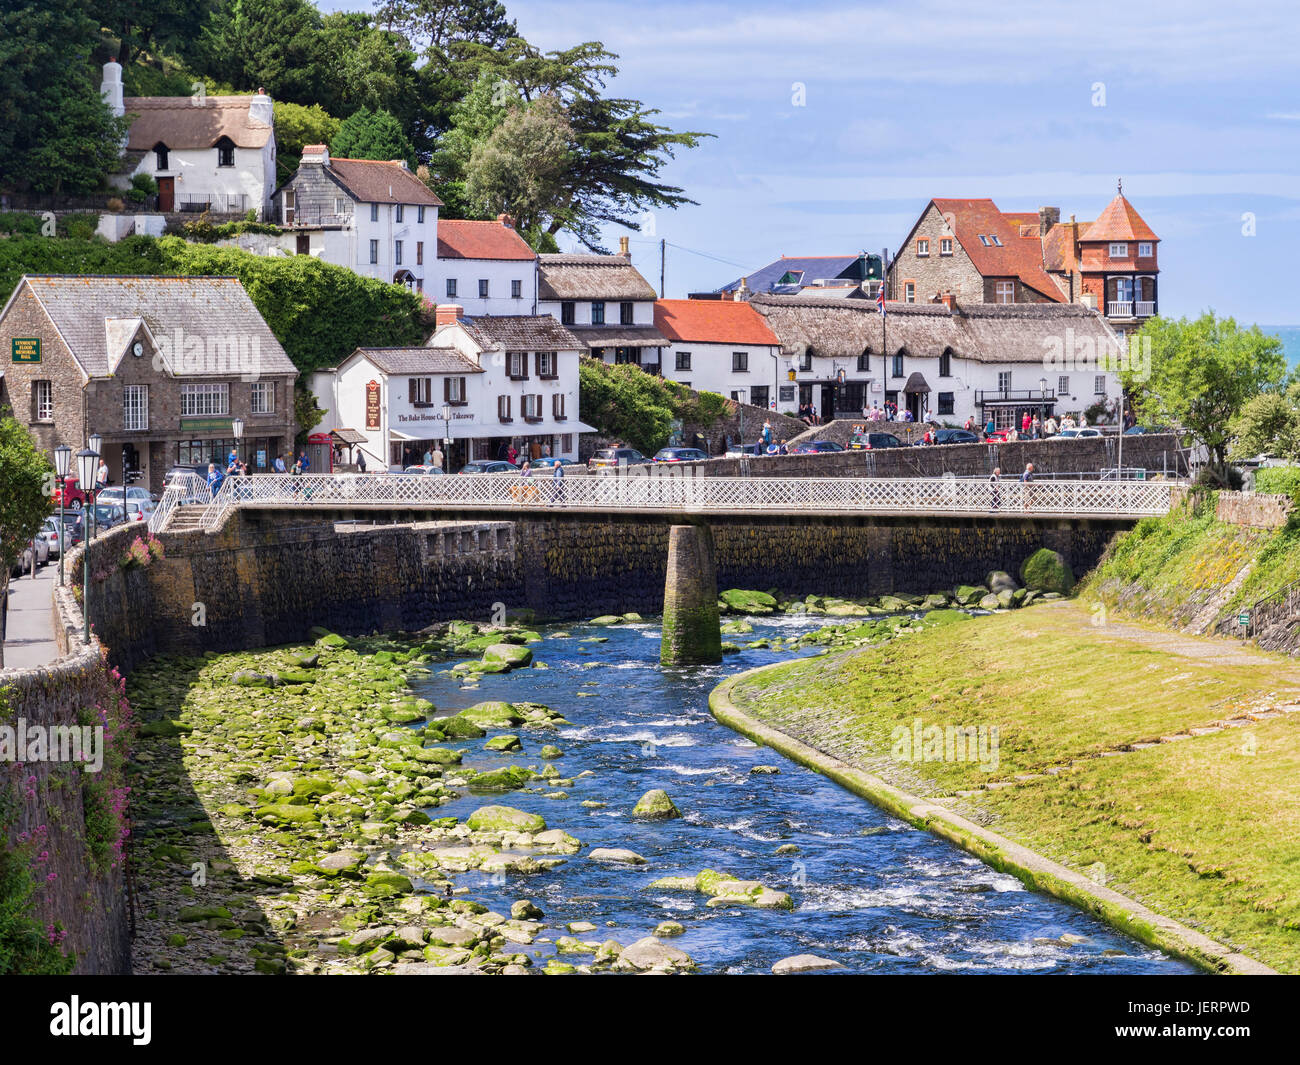 12 June 2017: Lynmouth, Devon, England, UK - A view of the River Lyn and Mars Hill on a sunny summer day at Lynmouth, - Stock Image